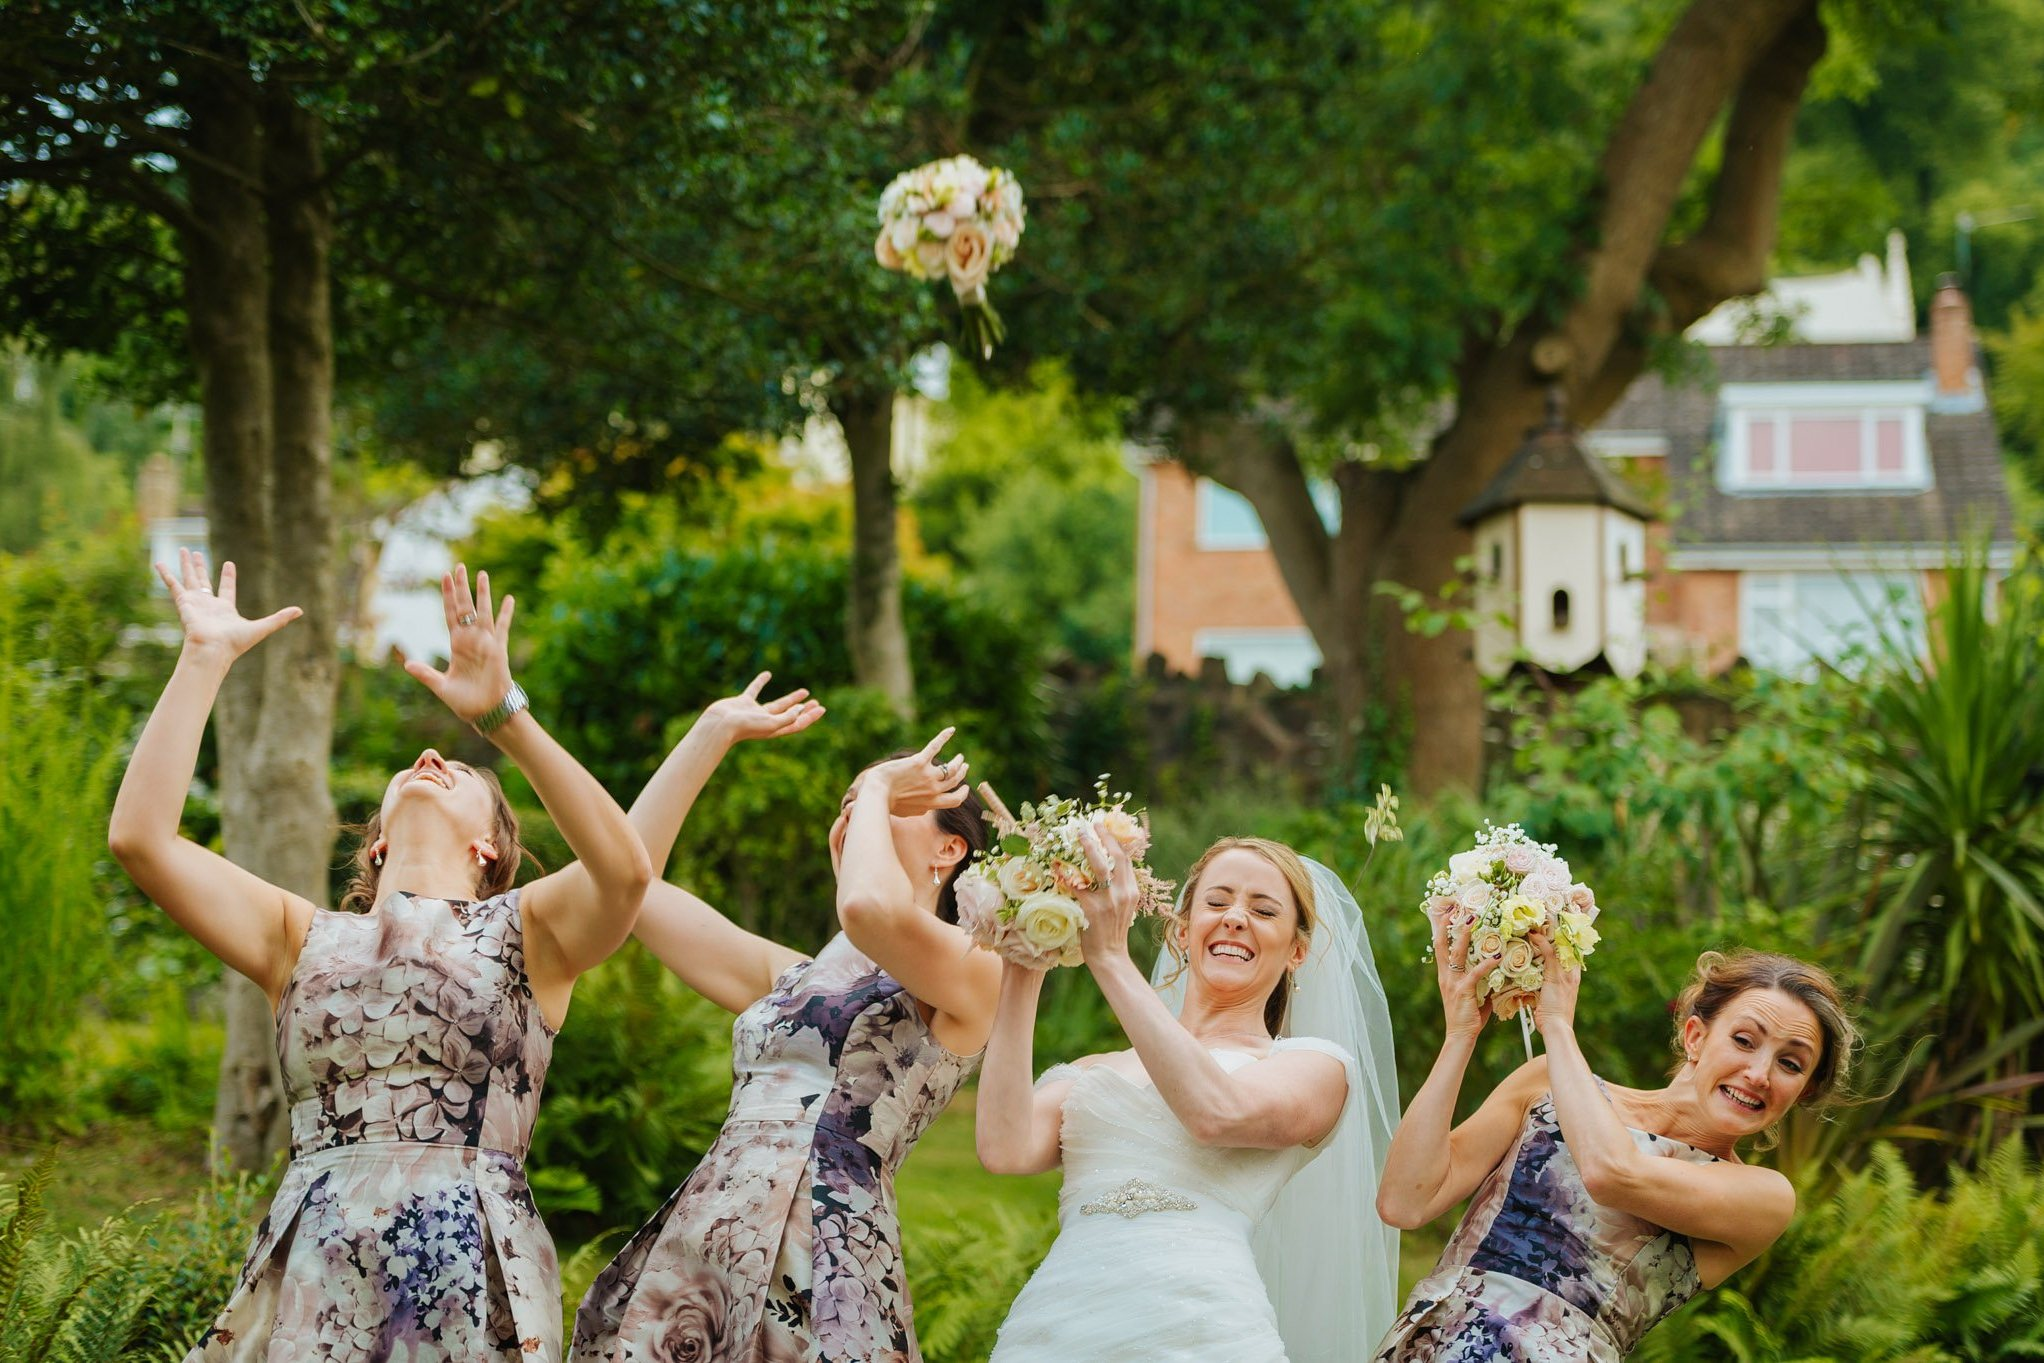 Georgina + Mike - Wedding photography in Malvern, Worcestershire 12